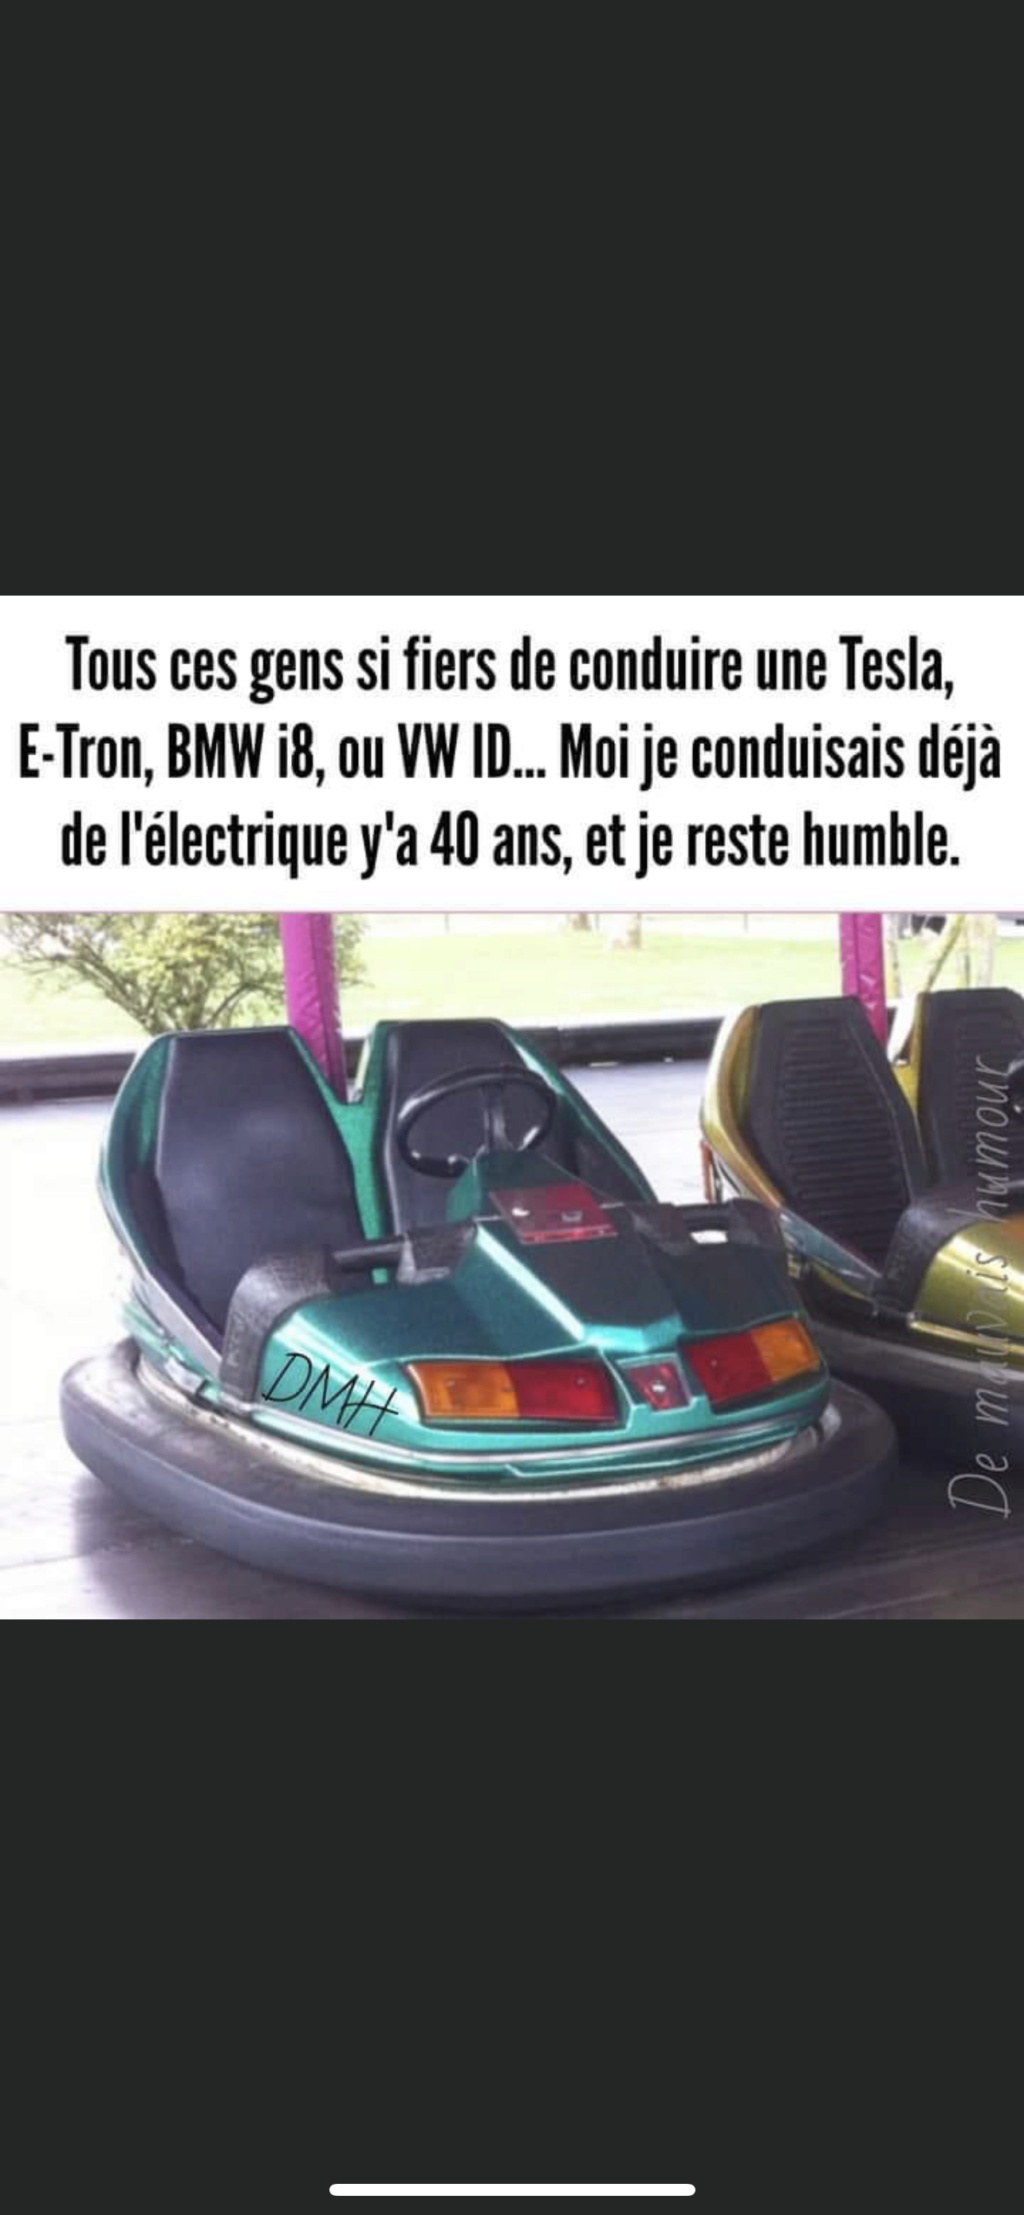 humour - Page 4 0d01ac10